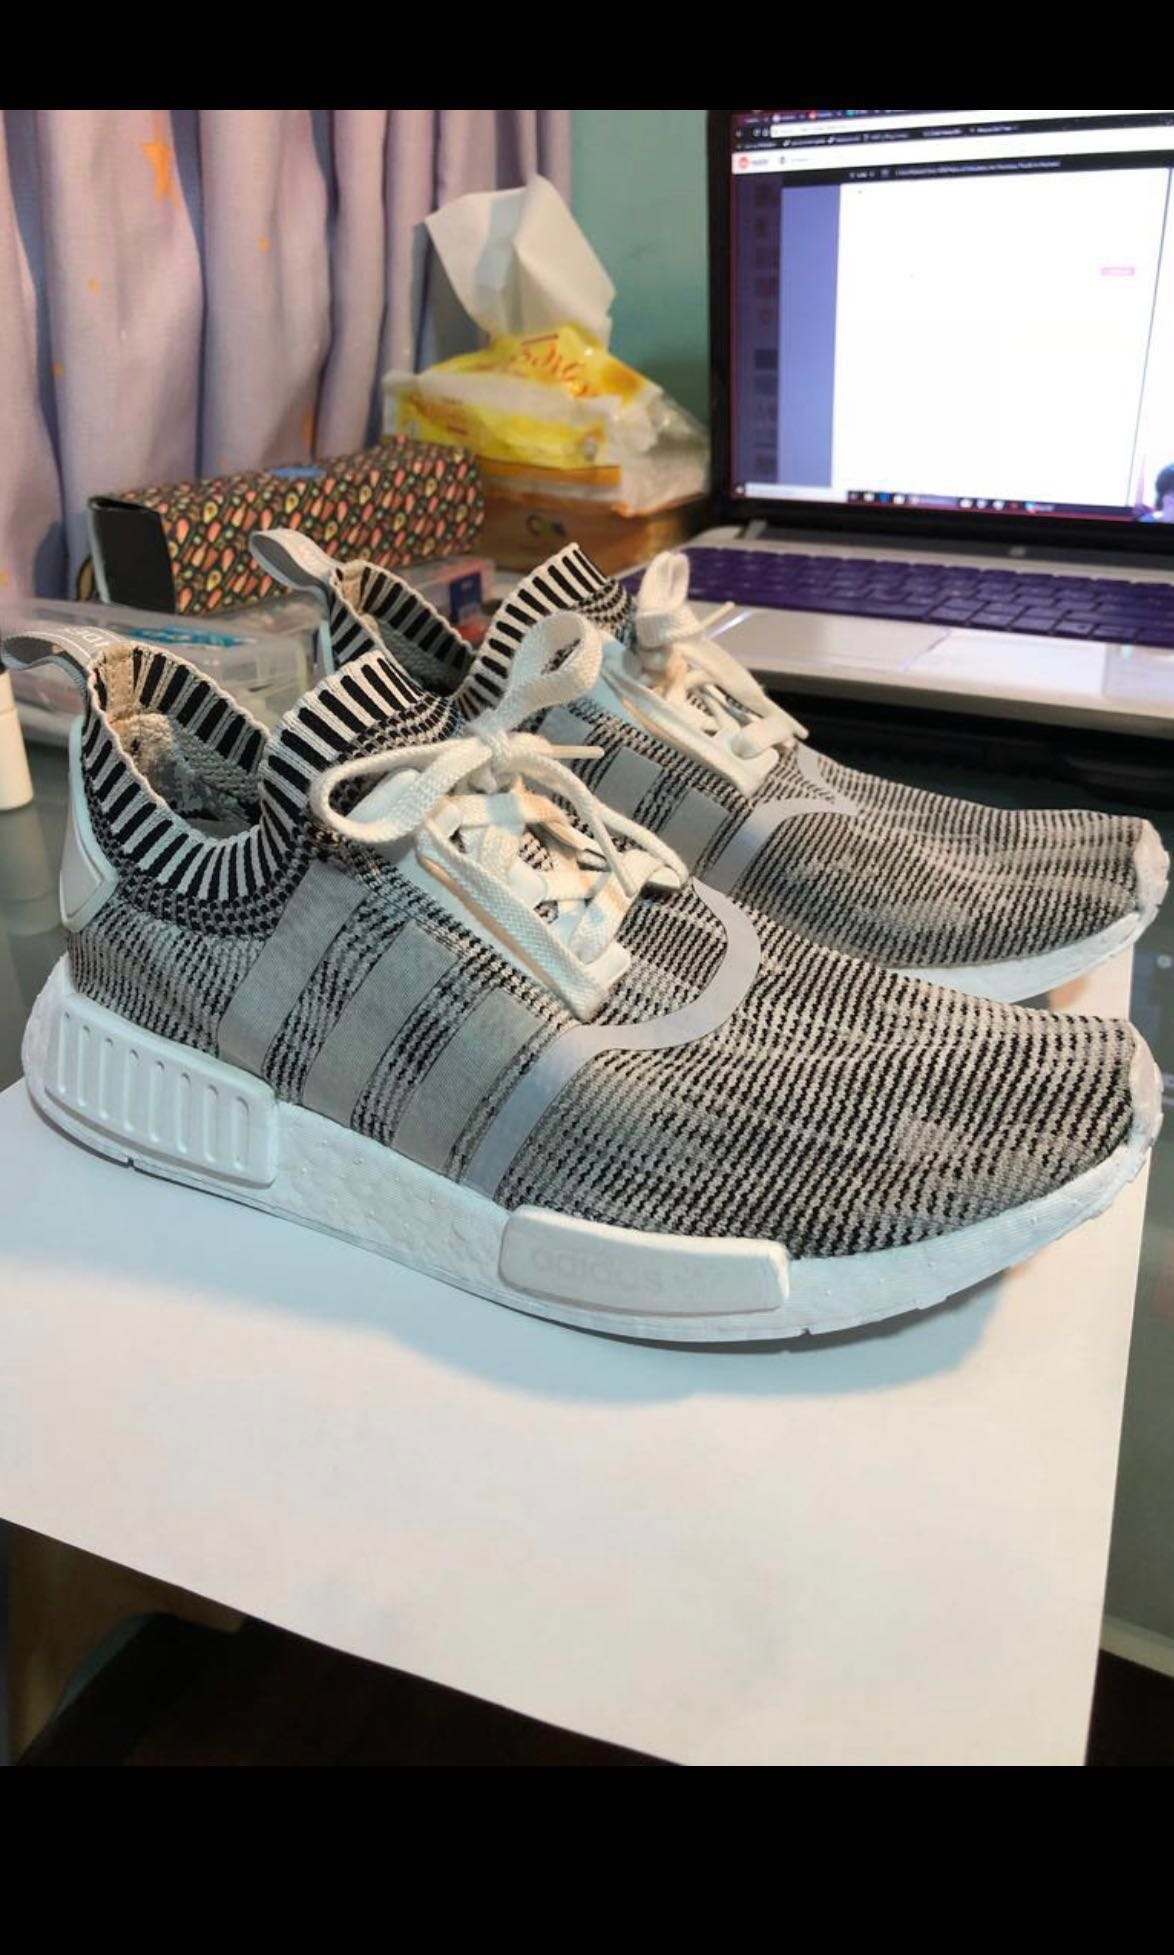 039175e977f80 URGENT] Adidas NMD R1PK Glitch Grey Camo, Men's Fashion, Footwear ...